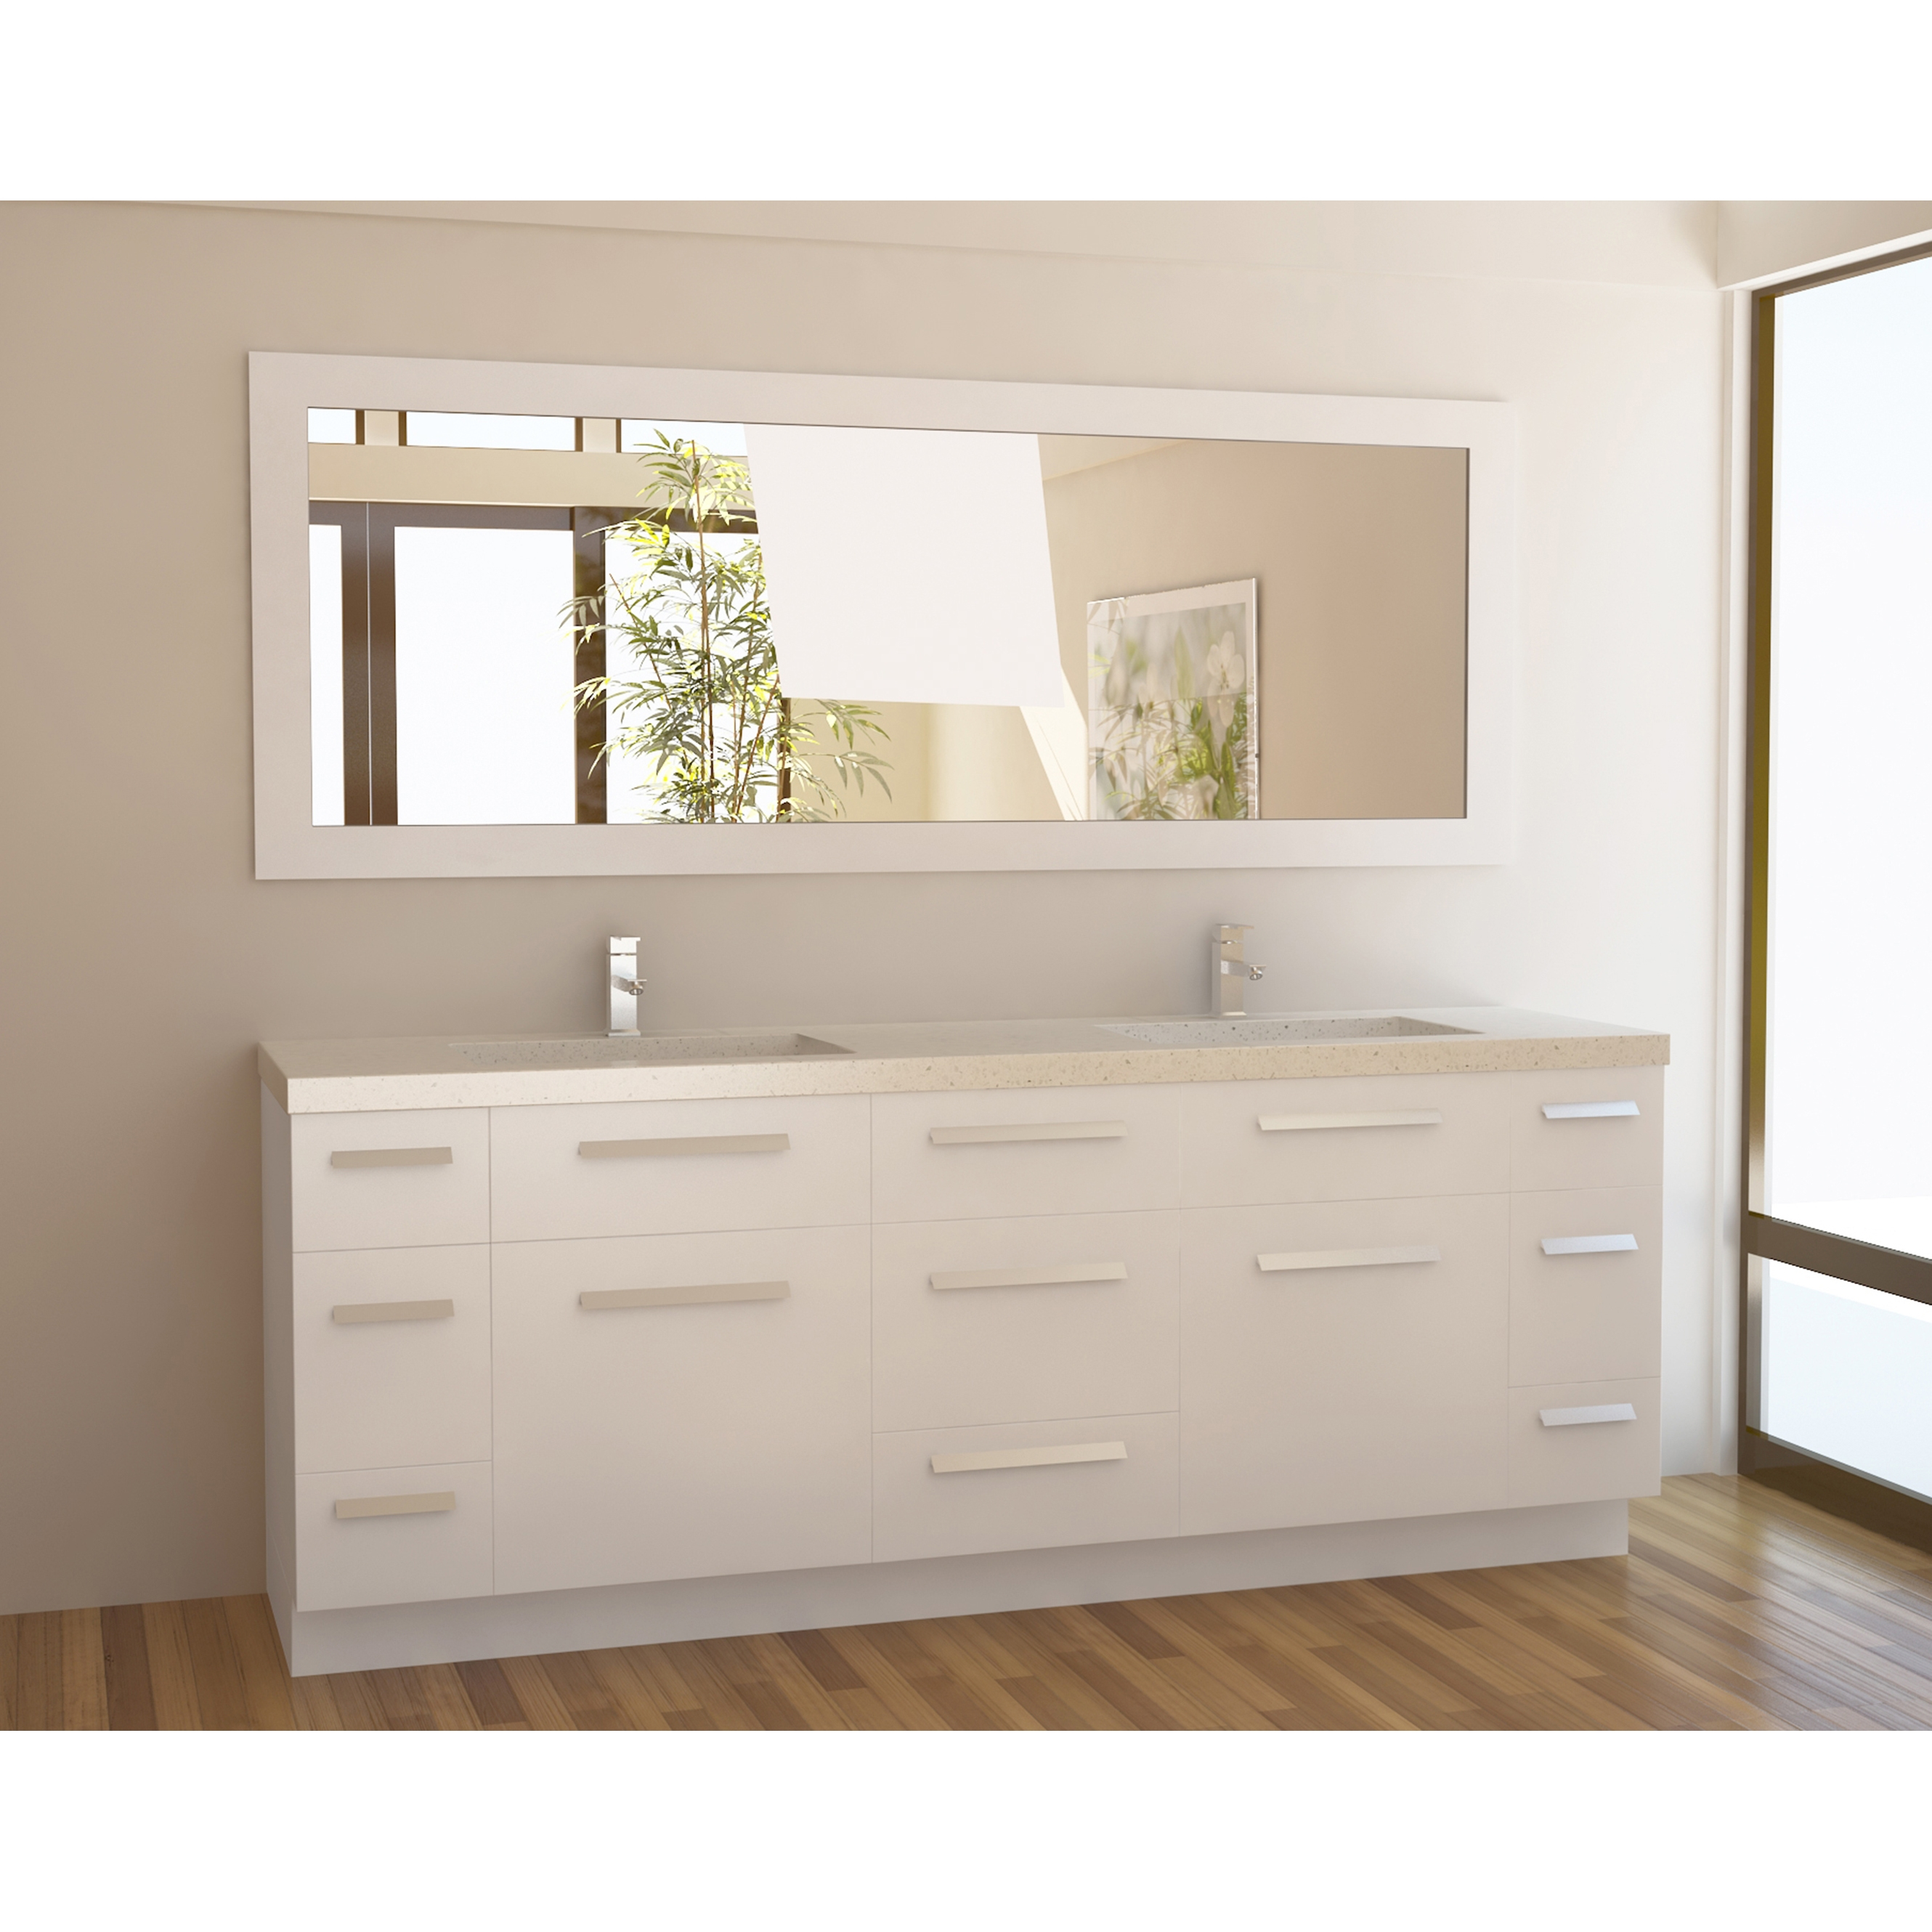 Permalink to 84 Inch Bathroom Vanity Top